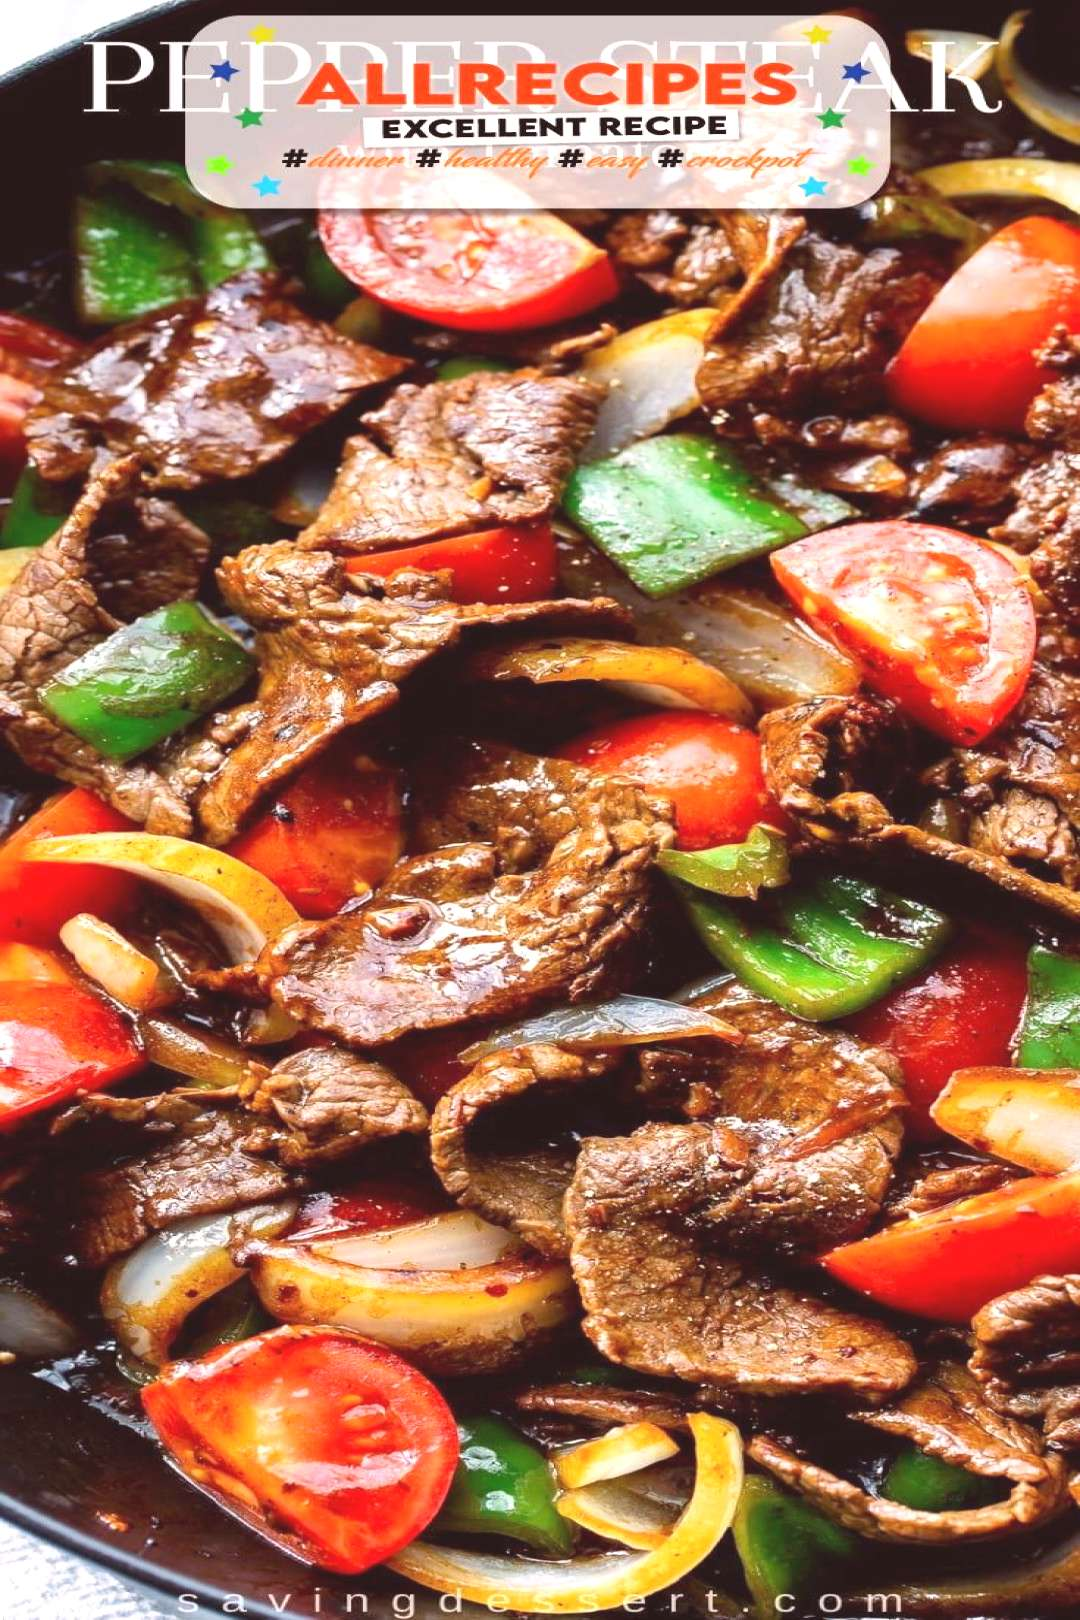 Green Pepper Steak with Tomatoes and Onions - - This vibrant and flavorful stir fry is easy enough